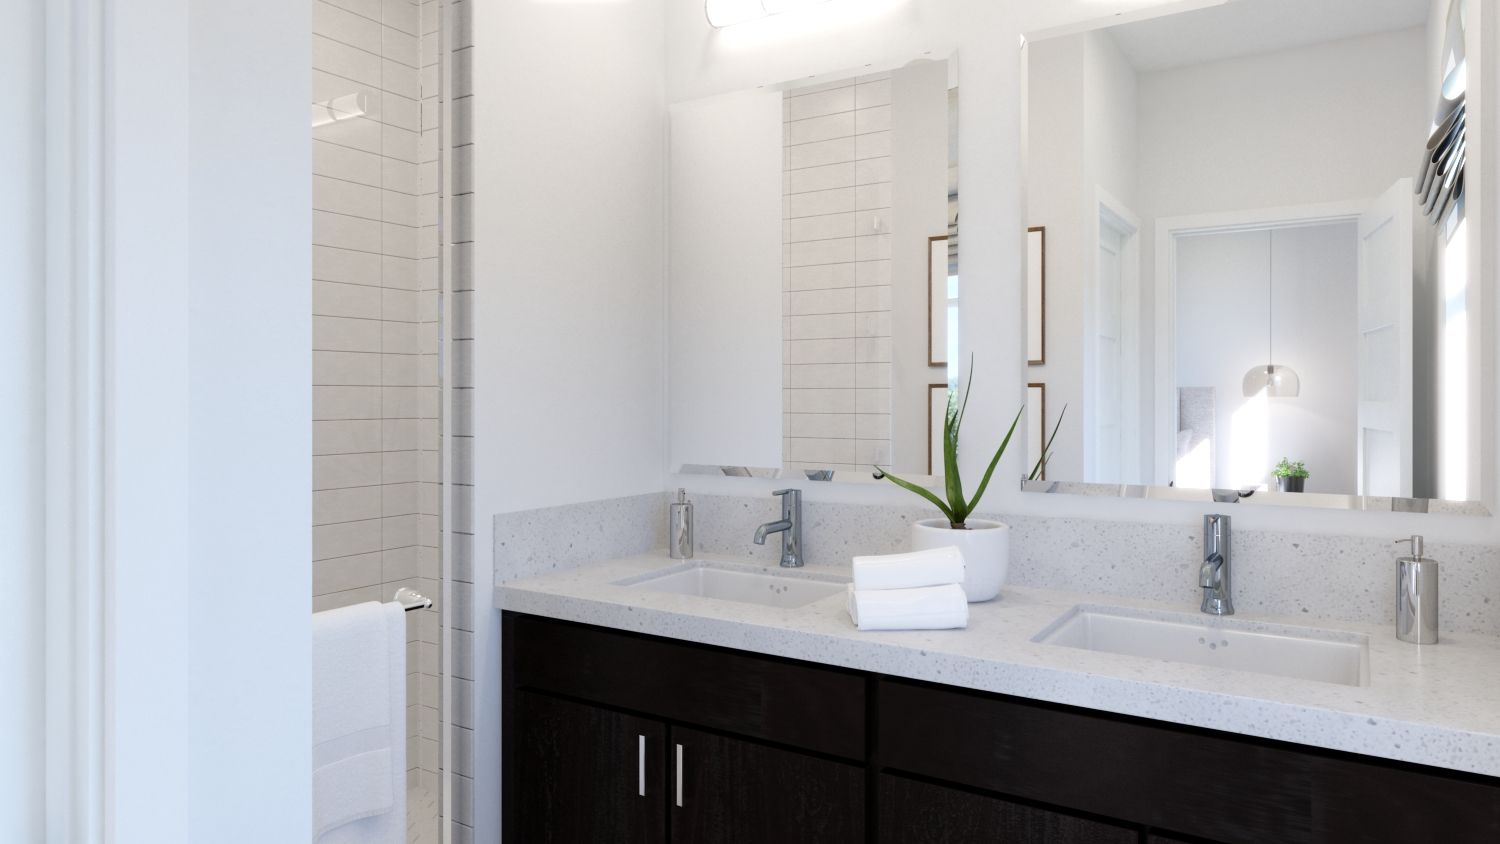 Bathroom featured in the Plan 1 By Melia in Orange County, CA